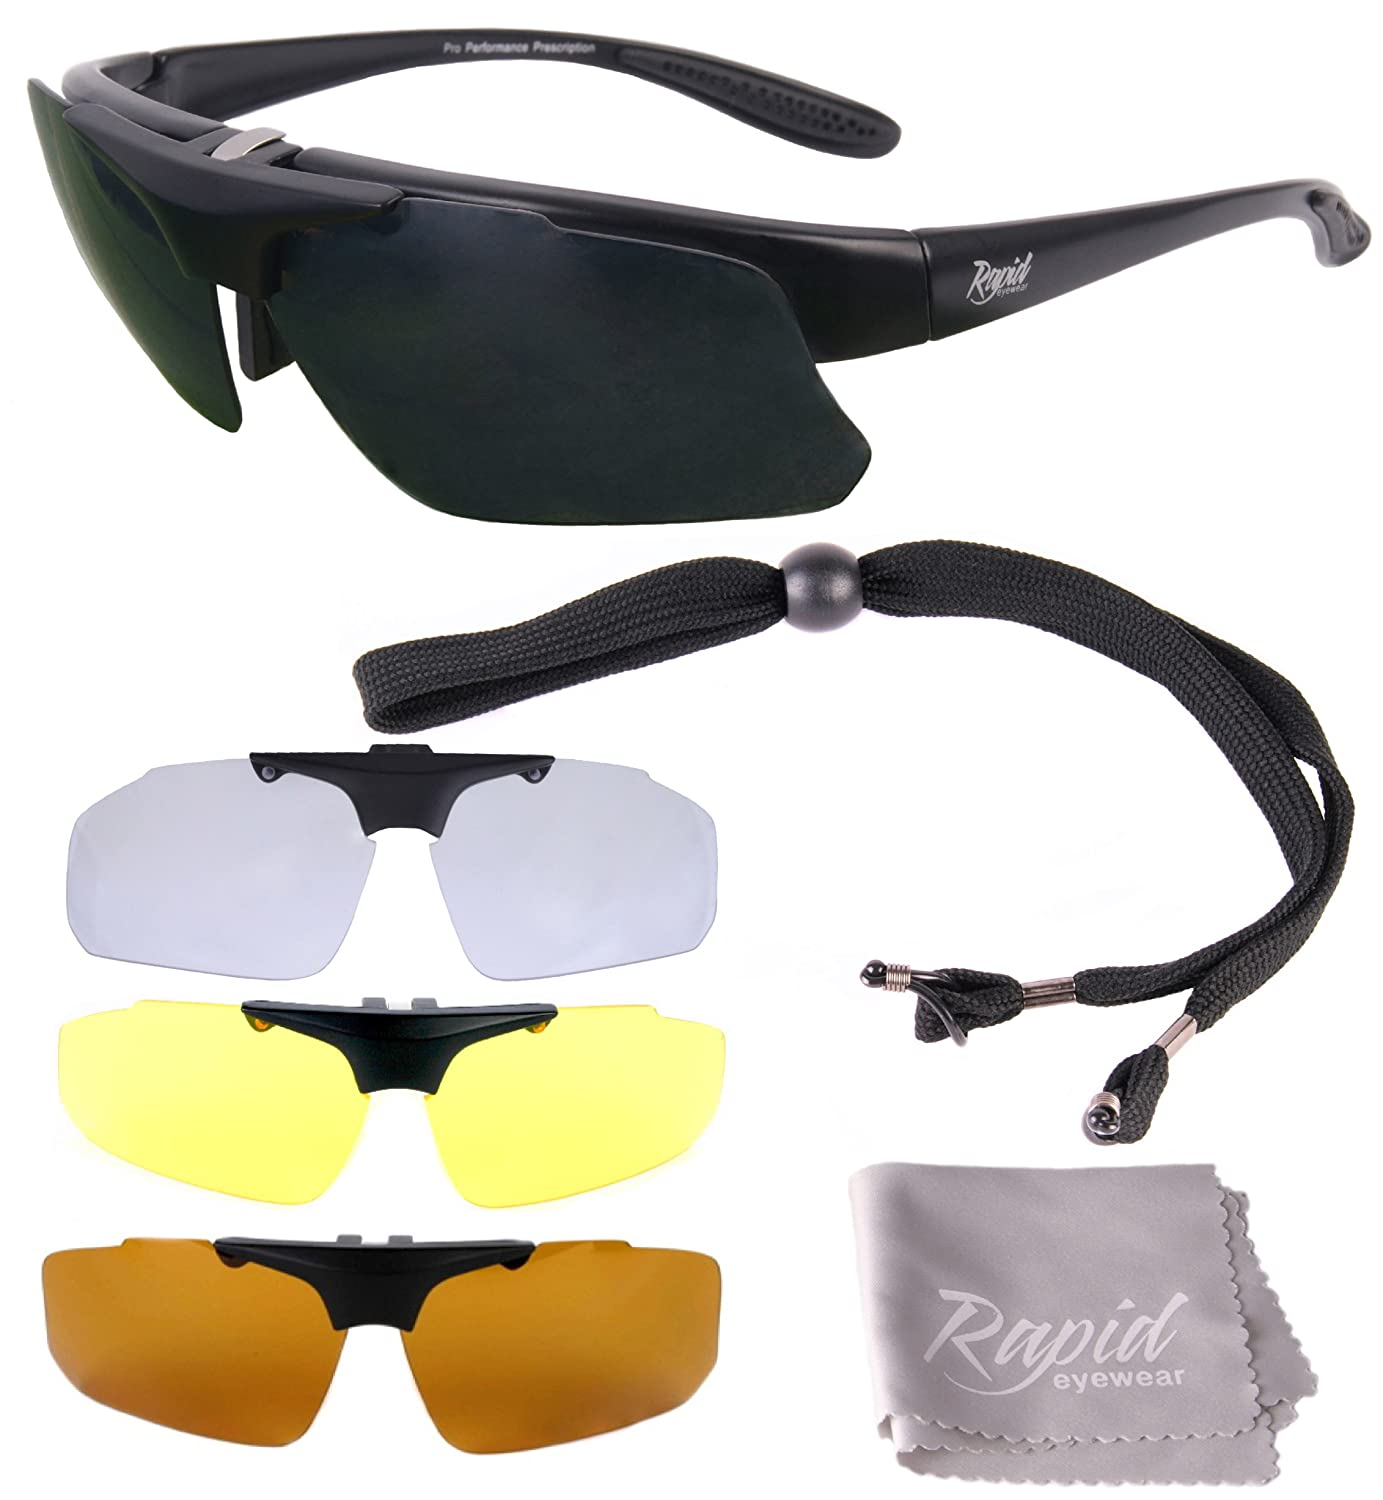 1a5a0c41a525 ... Eyewear Pro Performance Plus RX SPORTS SUNGLASSES FRAME with  Interchangeable UV Polarized Lenses. For Men and Women. For Cycling